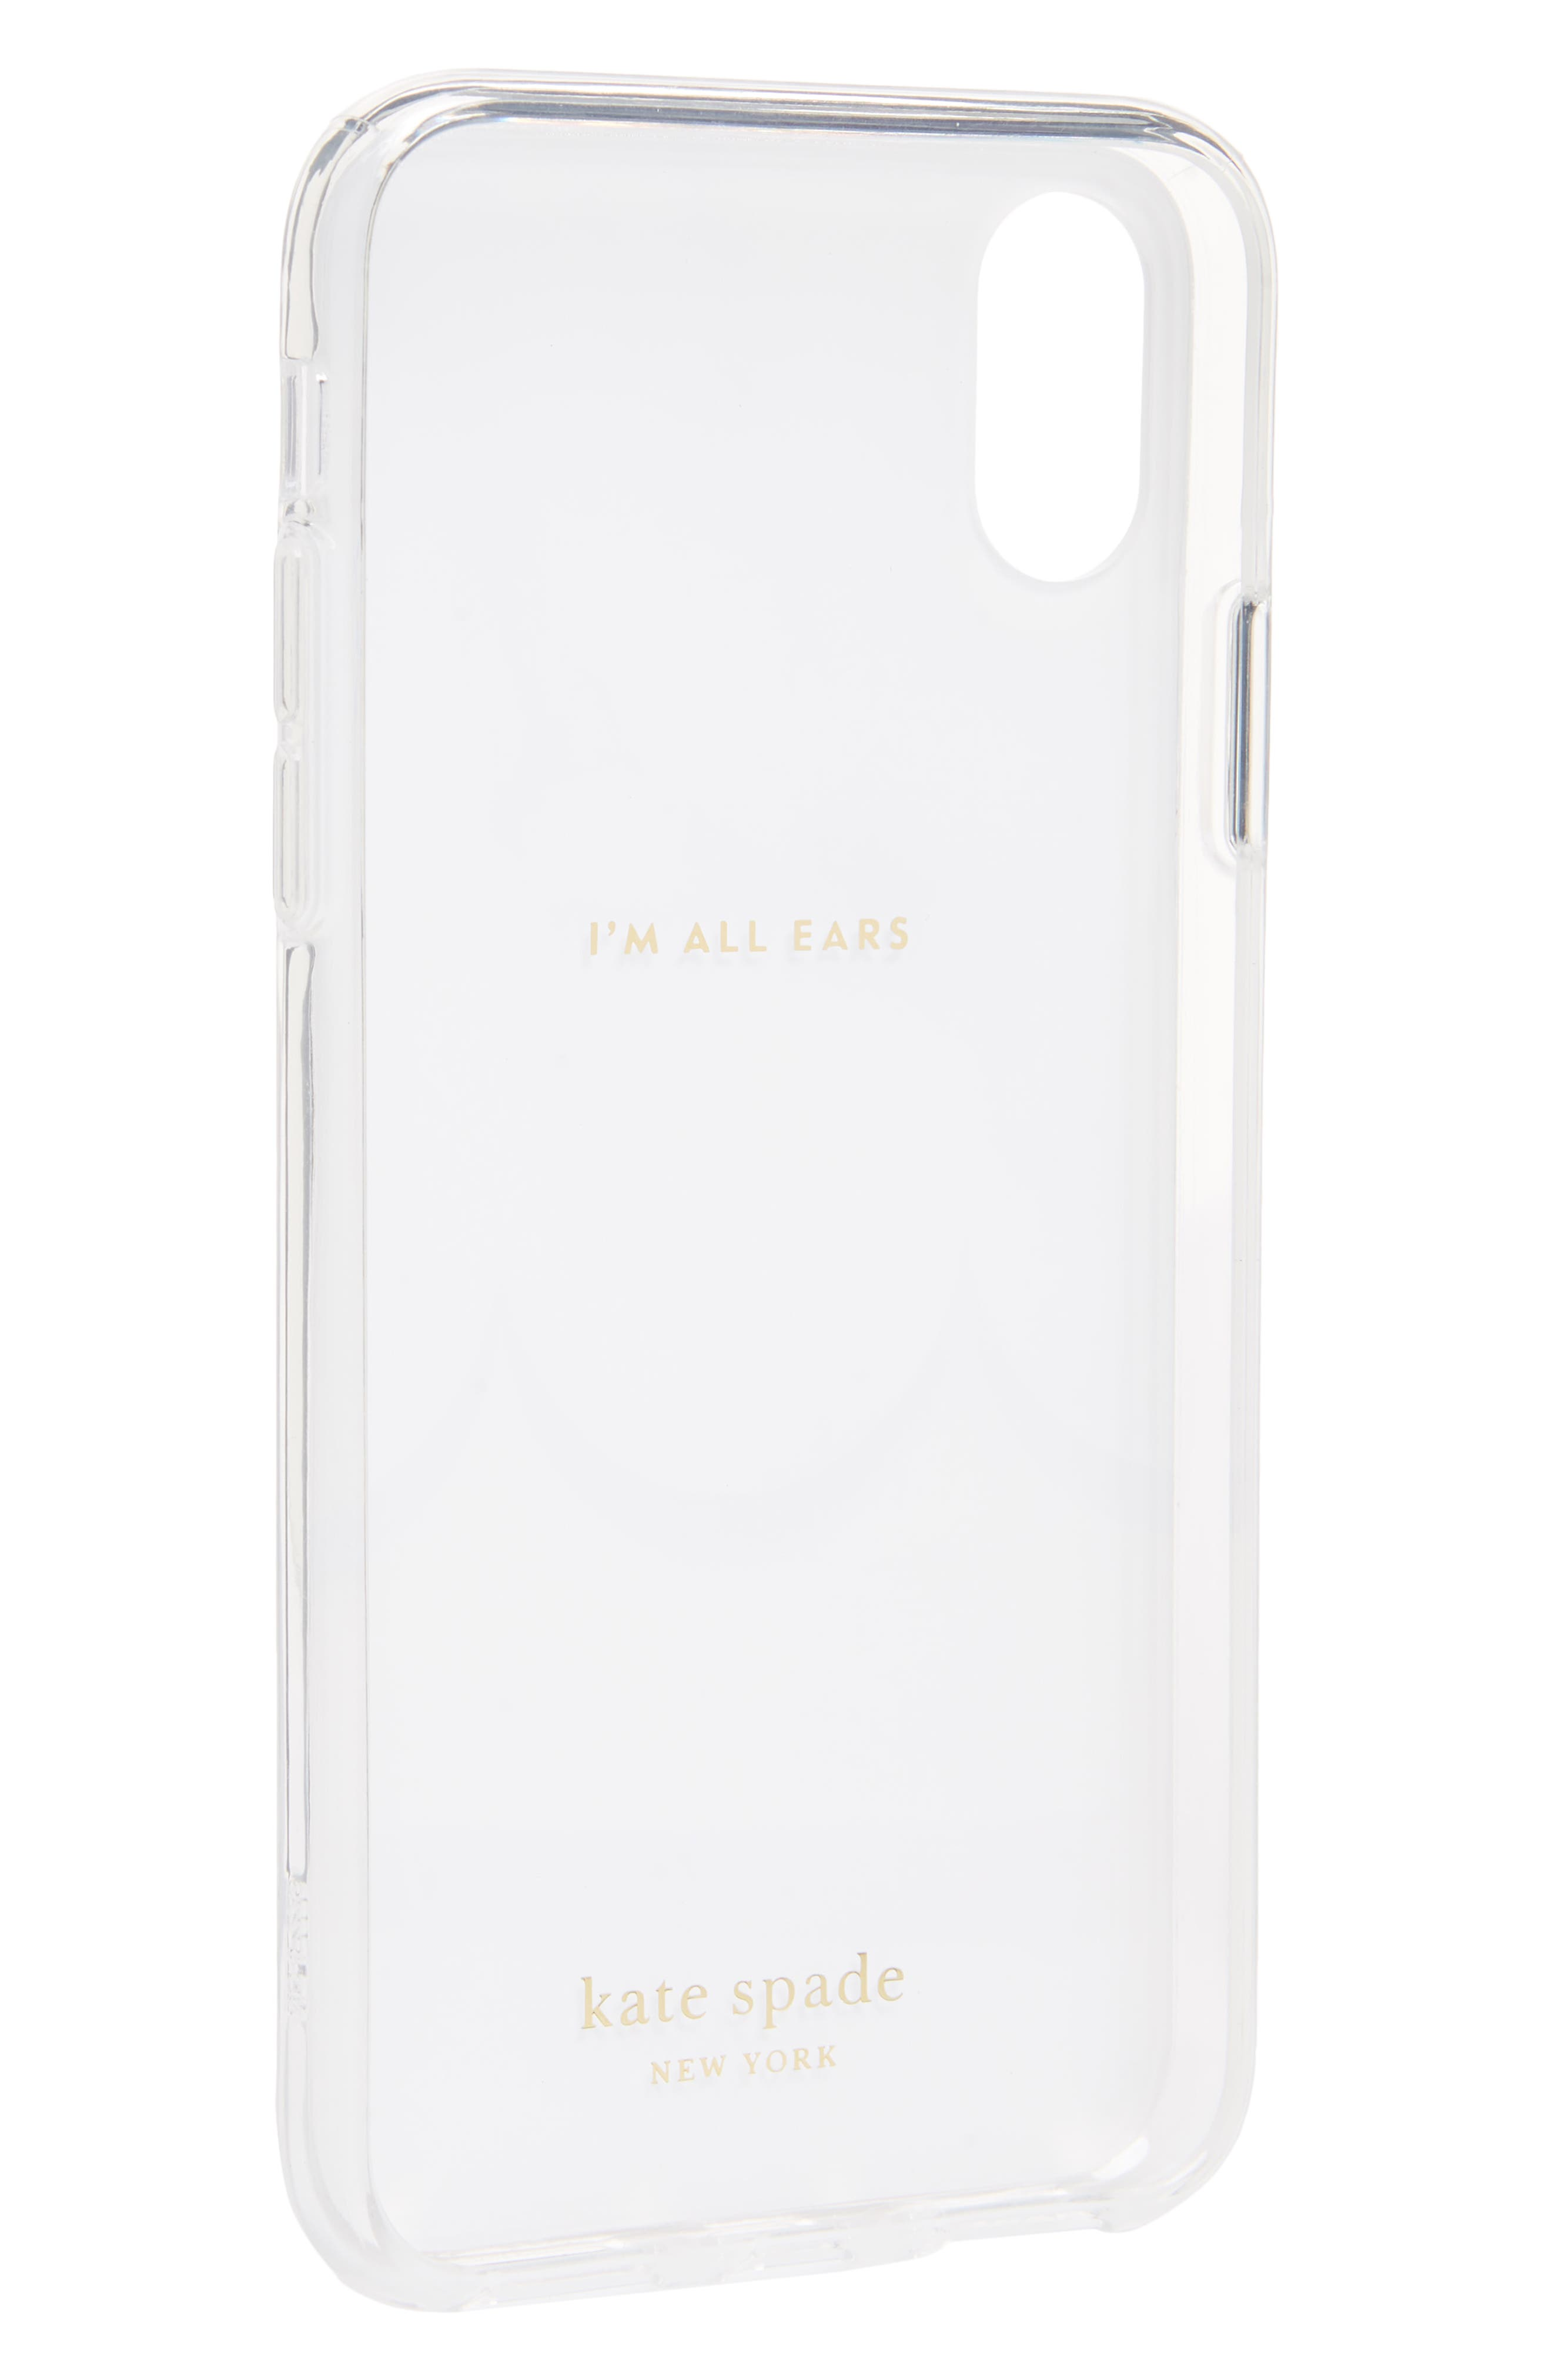 KATE SPADE NEW YORK,                             marble scallop iPhone X/Xs, Xs Max & XR case,                             Alternate thumbnail 2, color,                             PINK MULTI